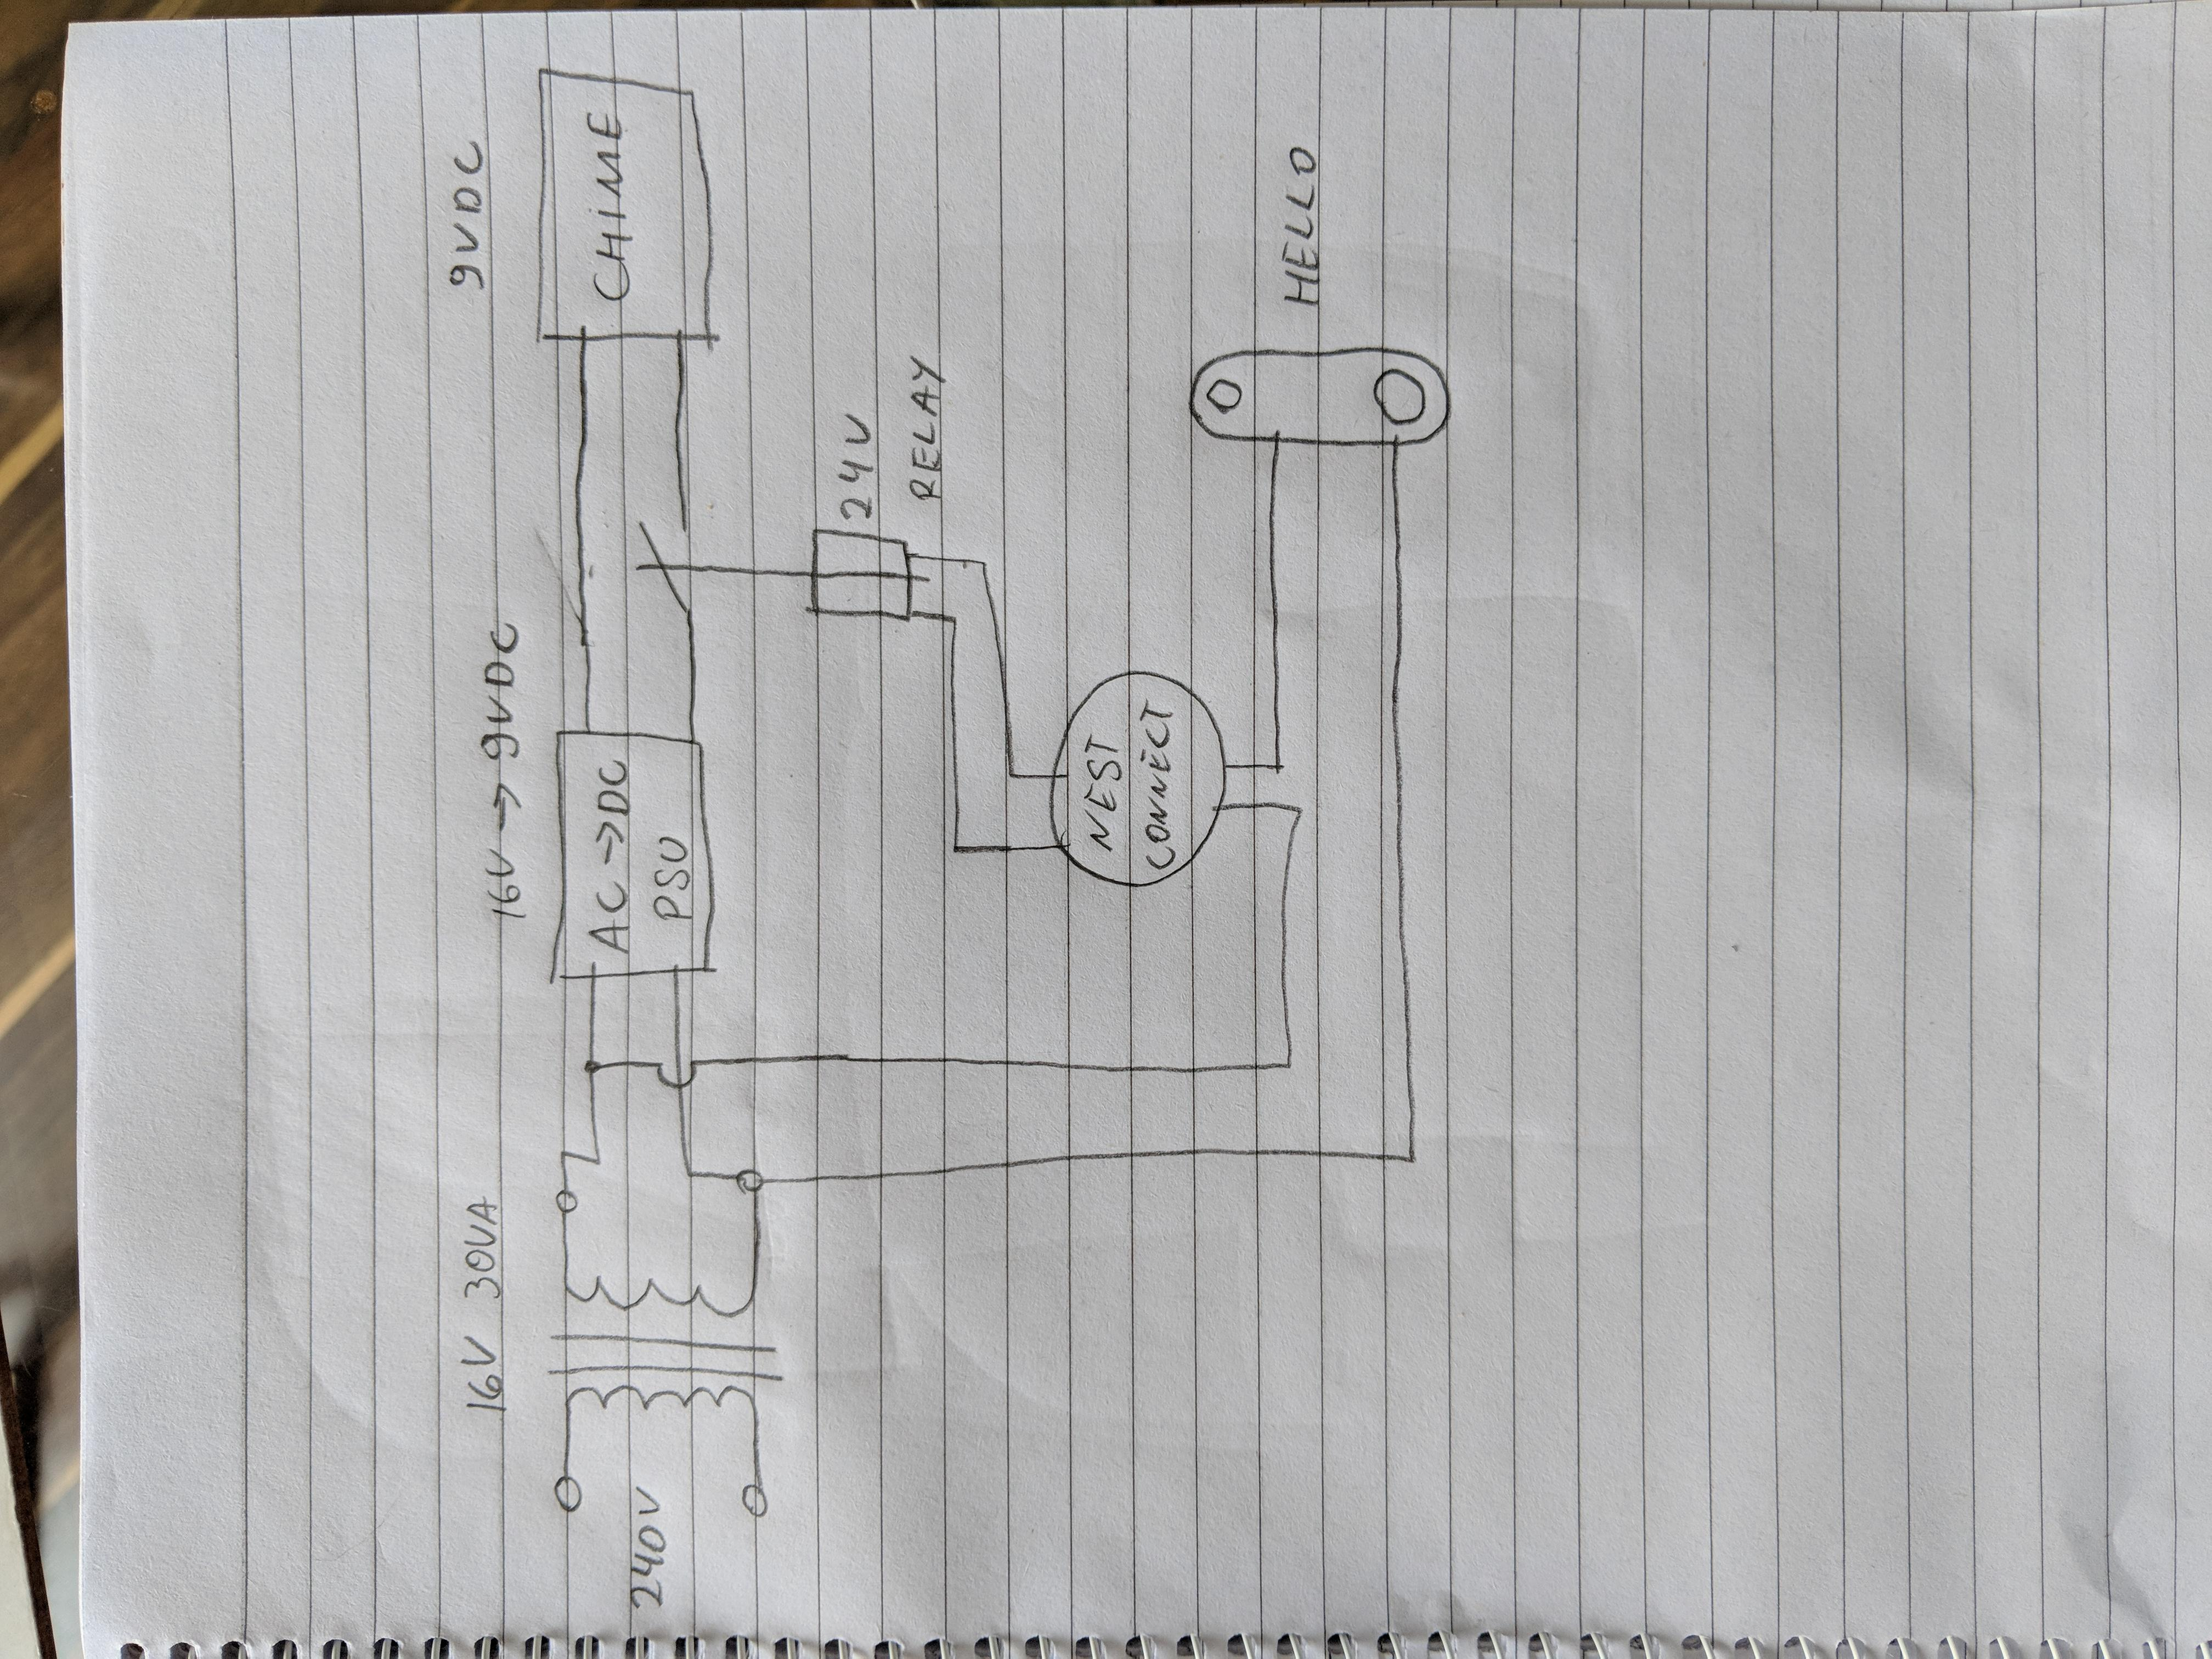 Nest Hello Wiring Diagram For Battery Operated Wired Doer Bell Uk : Nest - Nest Wiring Diagram 5 Wire